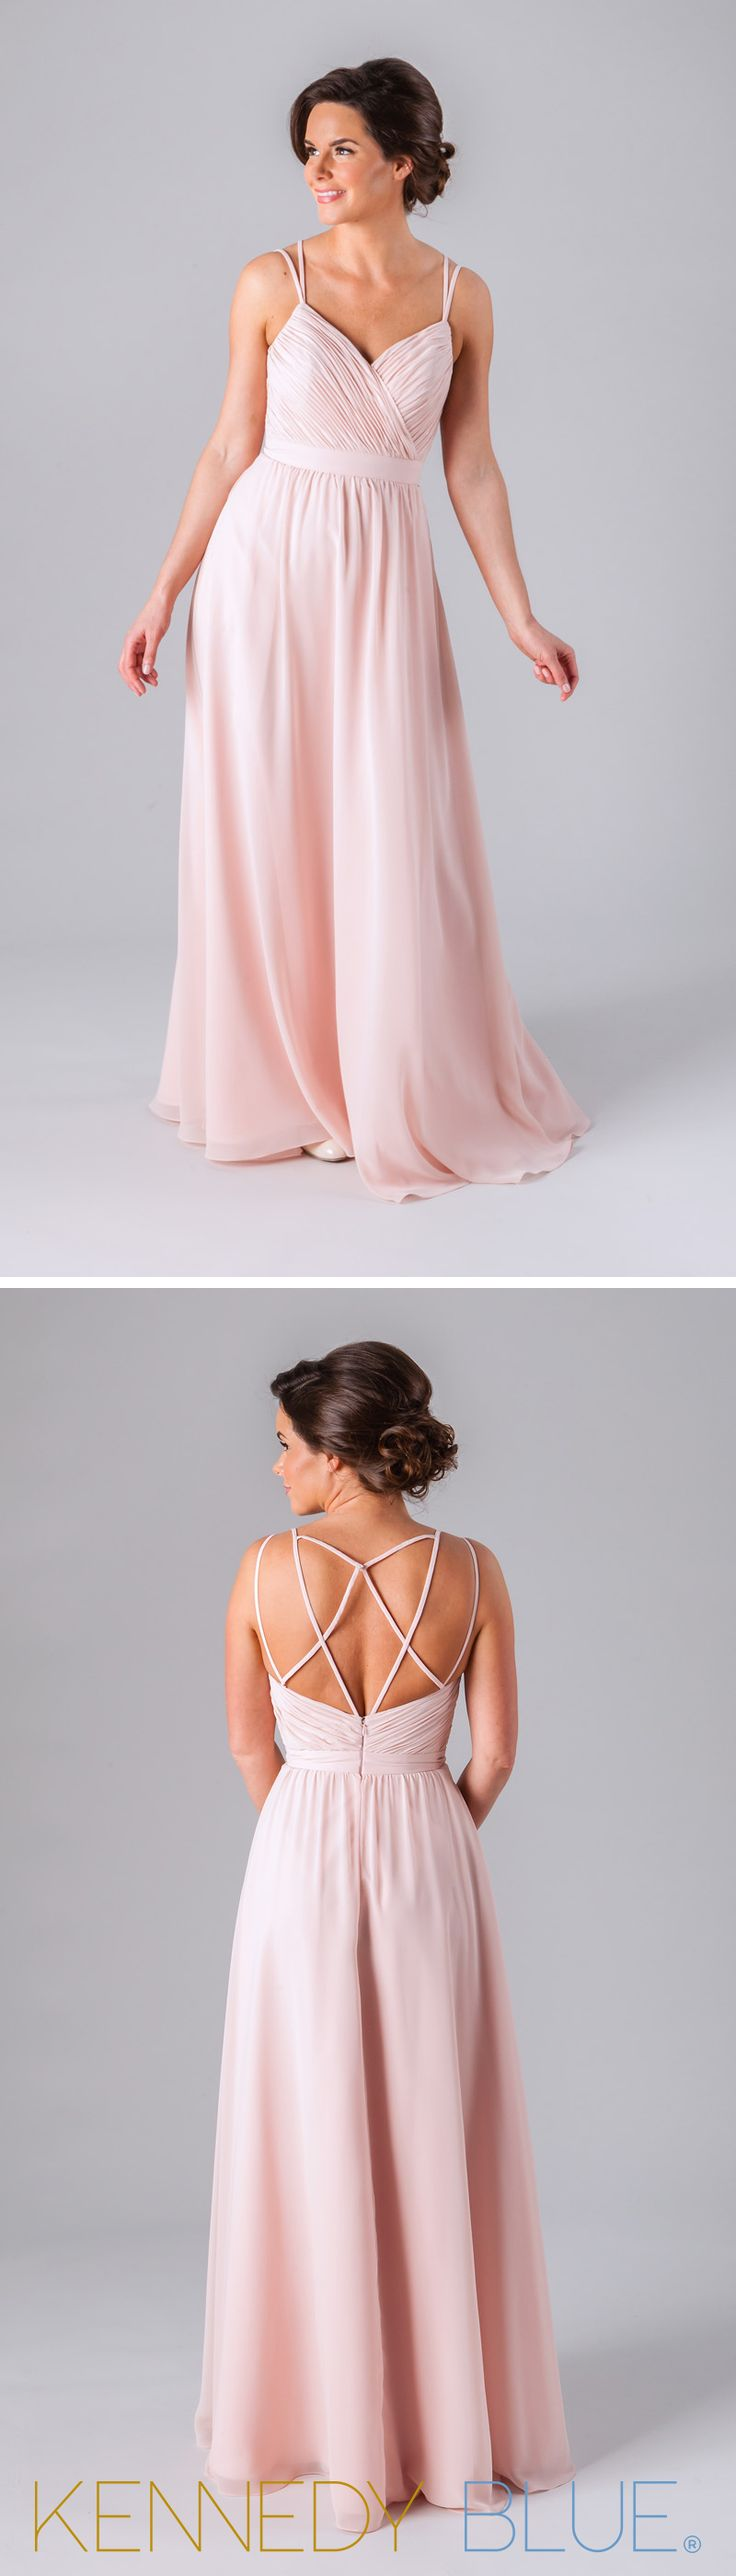 best prom images on pinterest